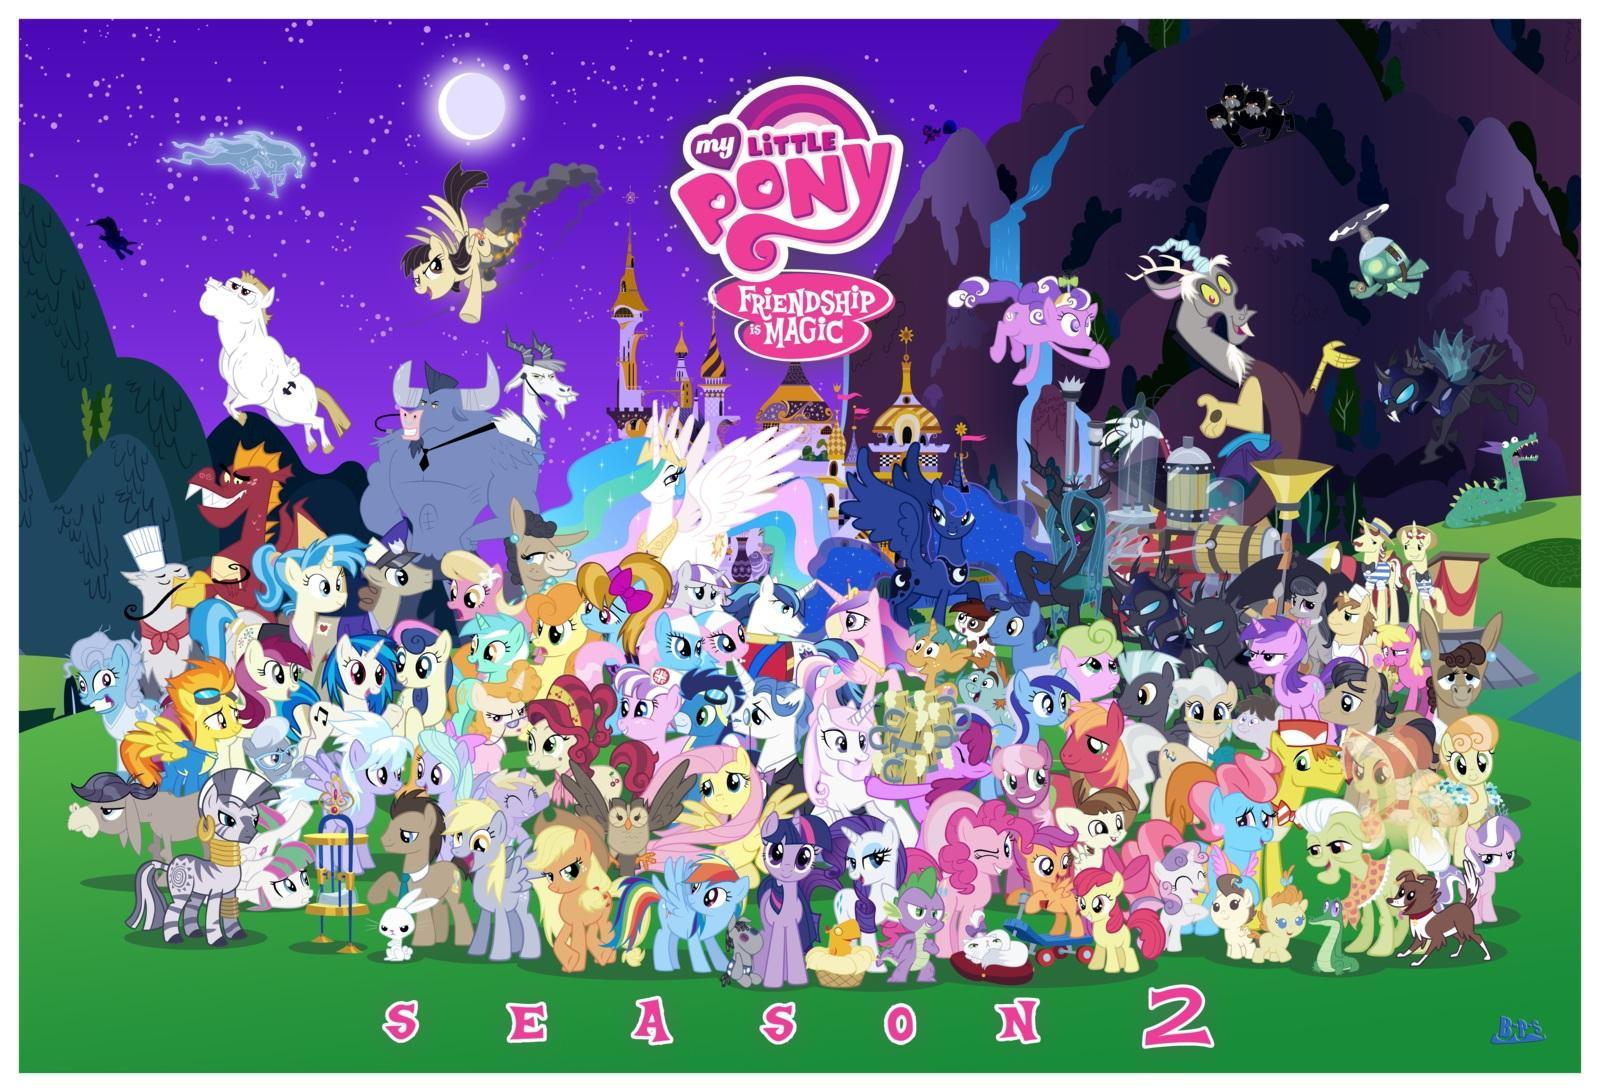 Are you a royal pony one of the main six or a CMC?